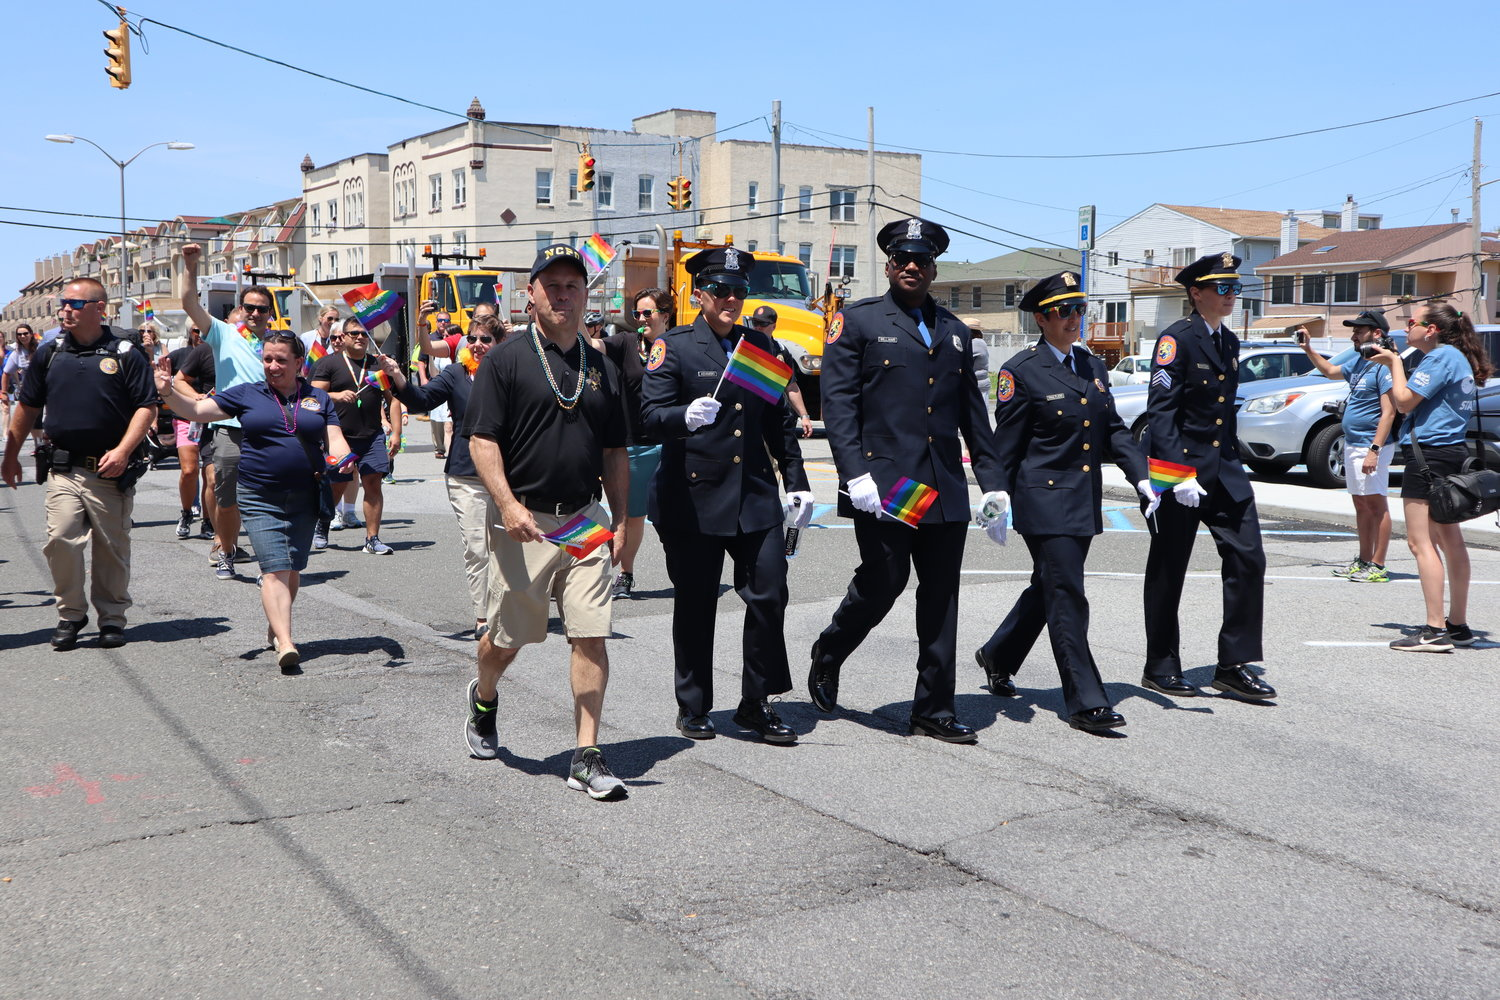 Members of the Nassau County Police Department marched in the Pride Parade.